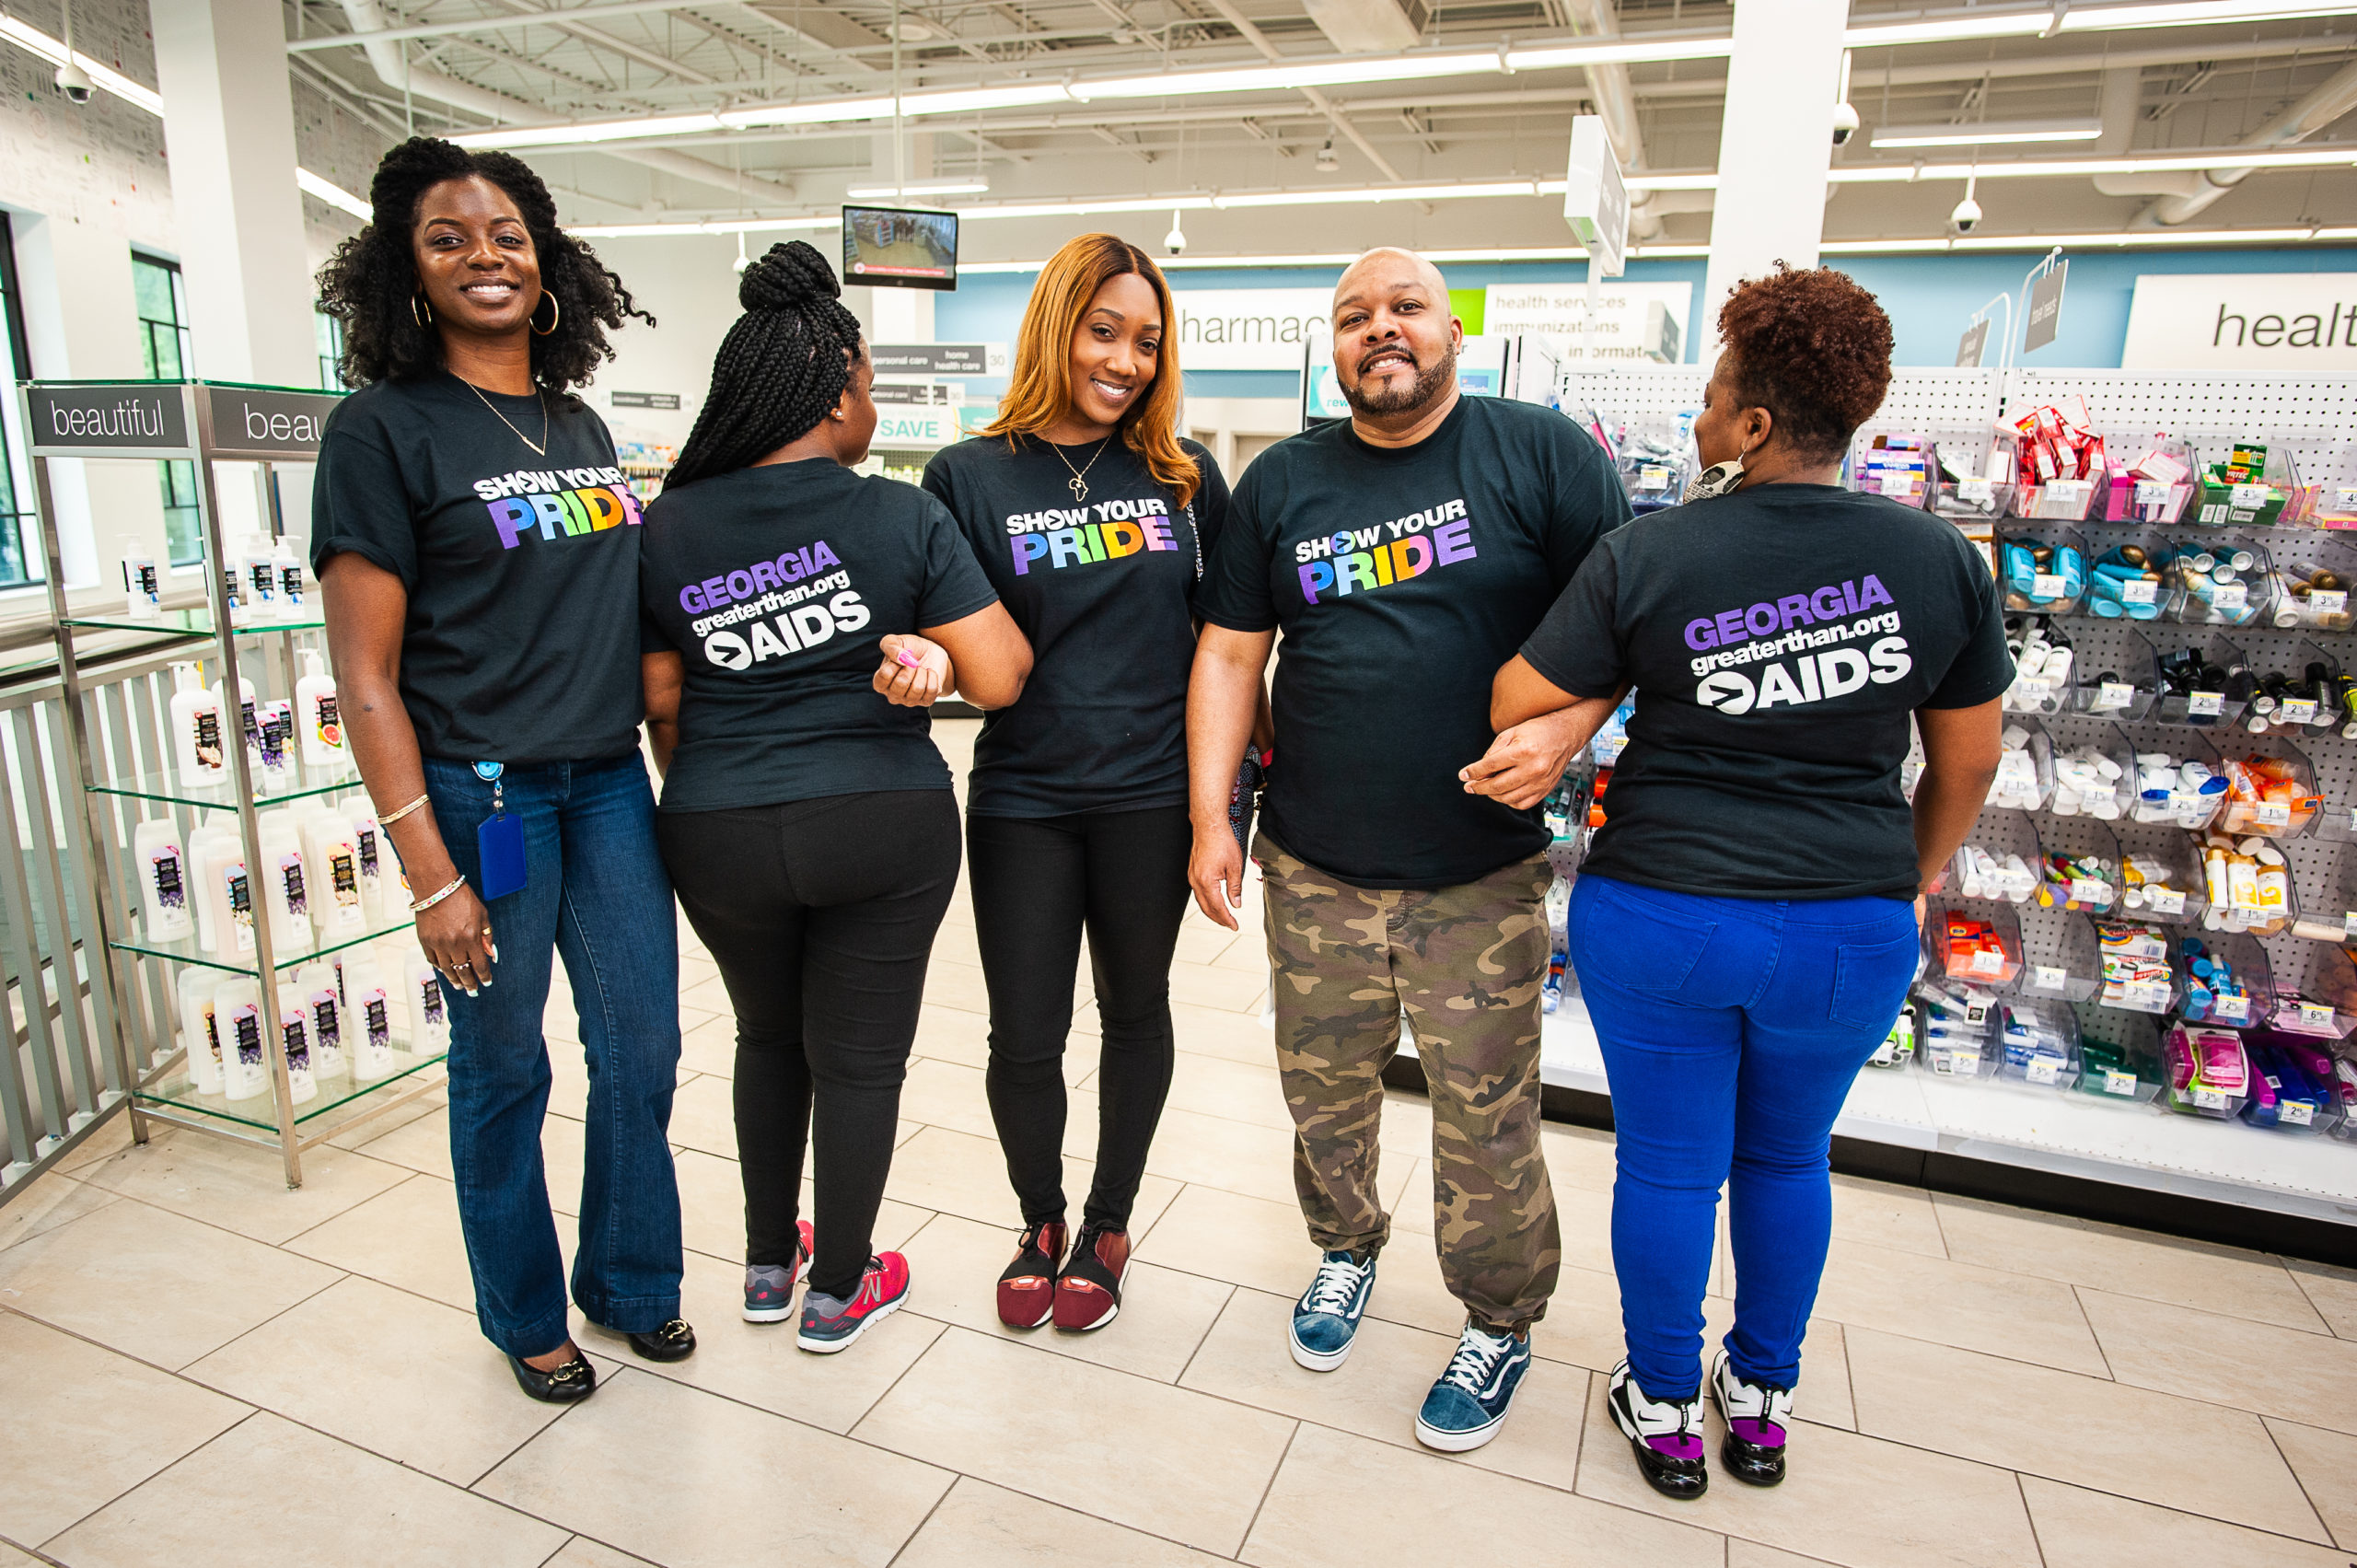 People smiling in a Walgreens for National HIV testing day